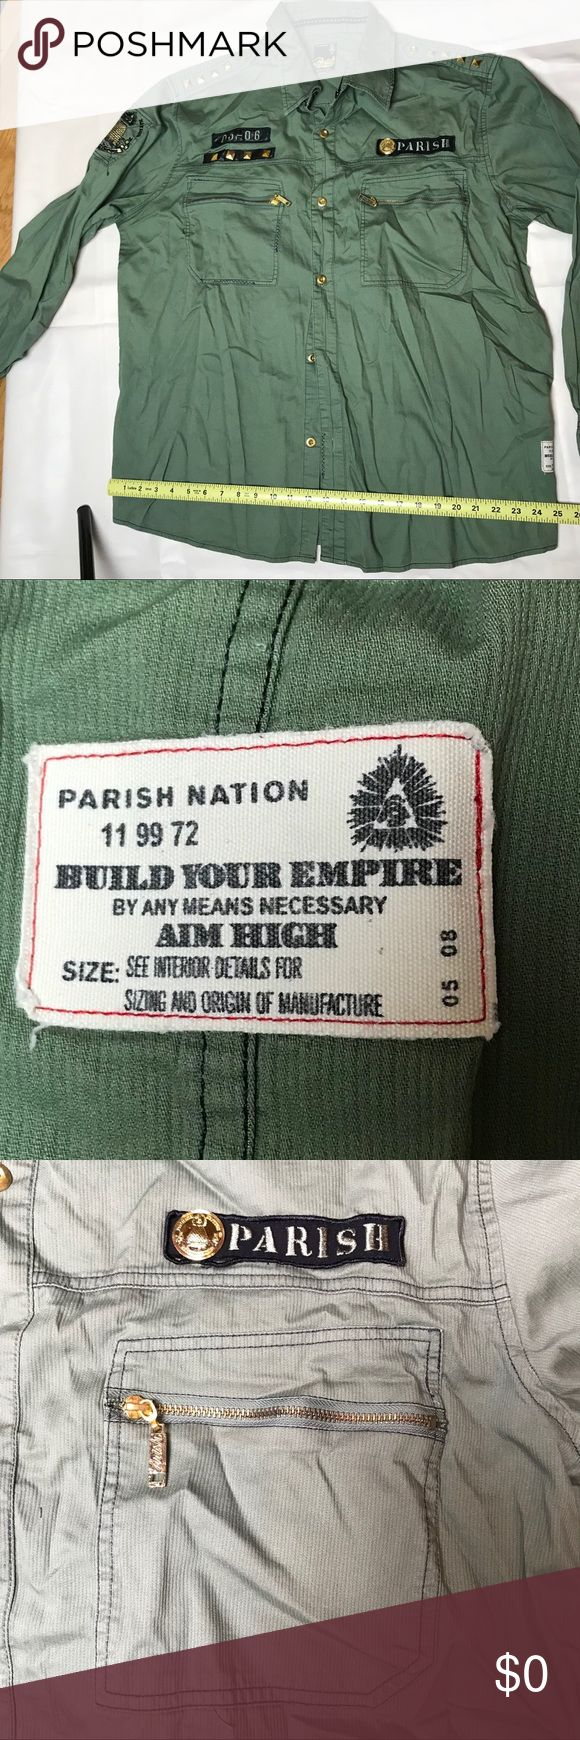 Parish Nation 4XL military style shirt AIM HIGH NWT   Lots of embellishment, embroidery, metal studs. Etc   Super nice shirt   Was purchased at least 8 years ago and has been packed away Parish Nation Shirts